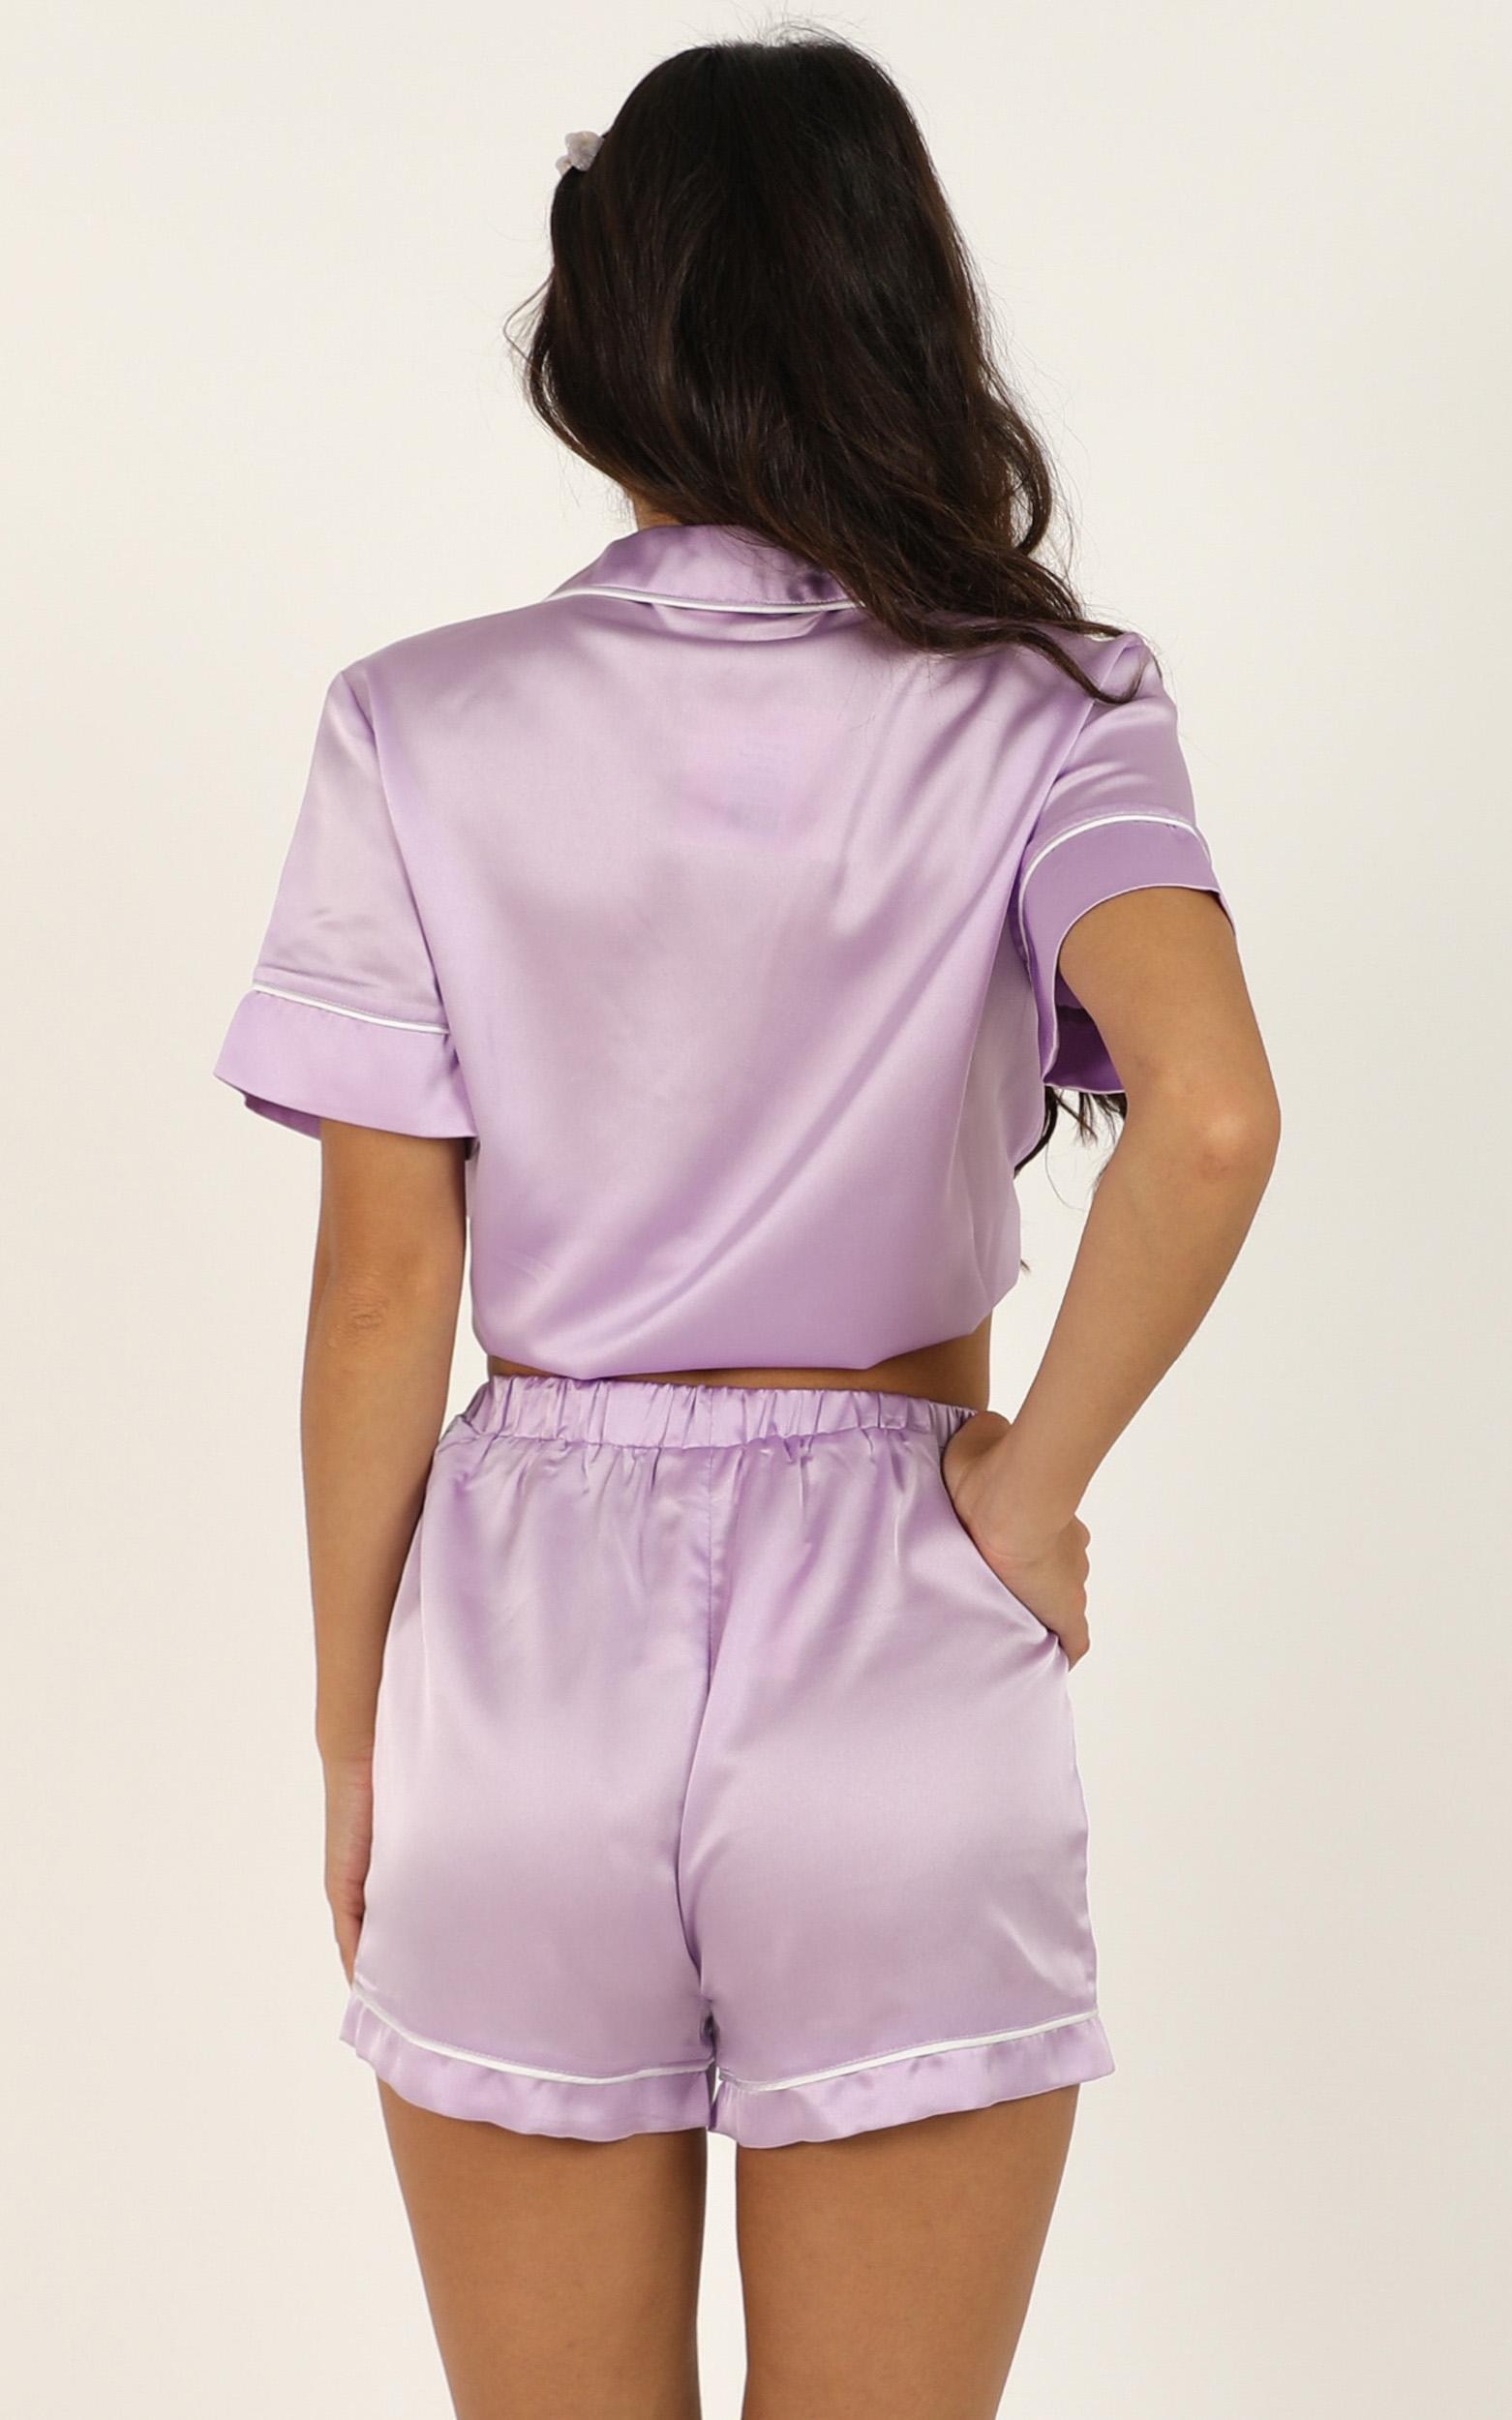 Sleep All Day Top in lilac satin - 20 (XXXXL), Purple, hi-res image number null